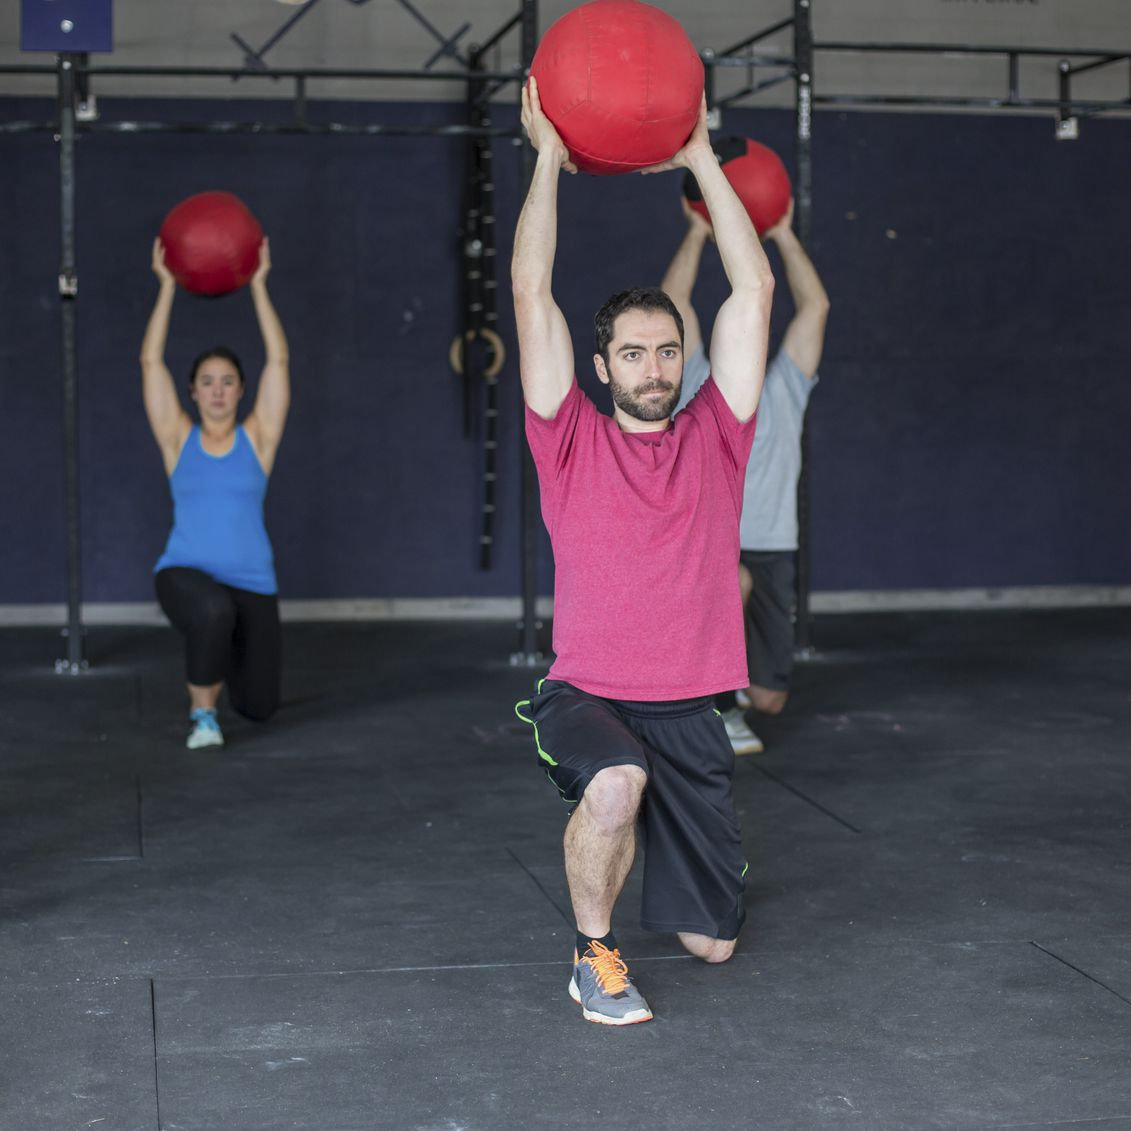 How to Do an Overhead Lunge